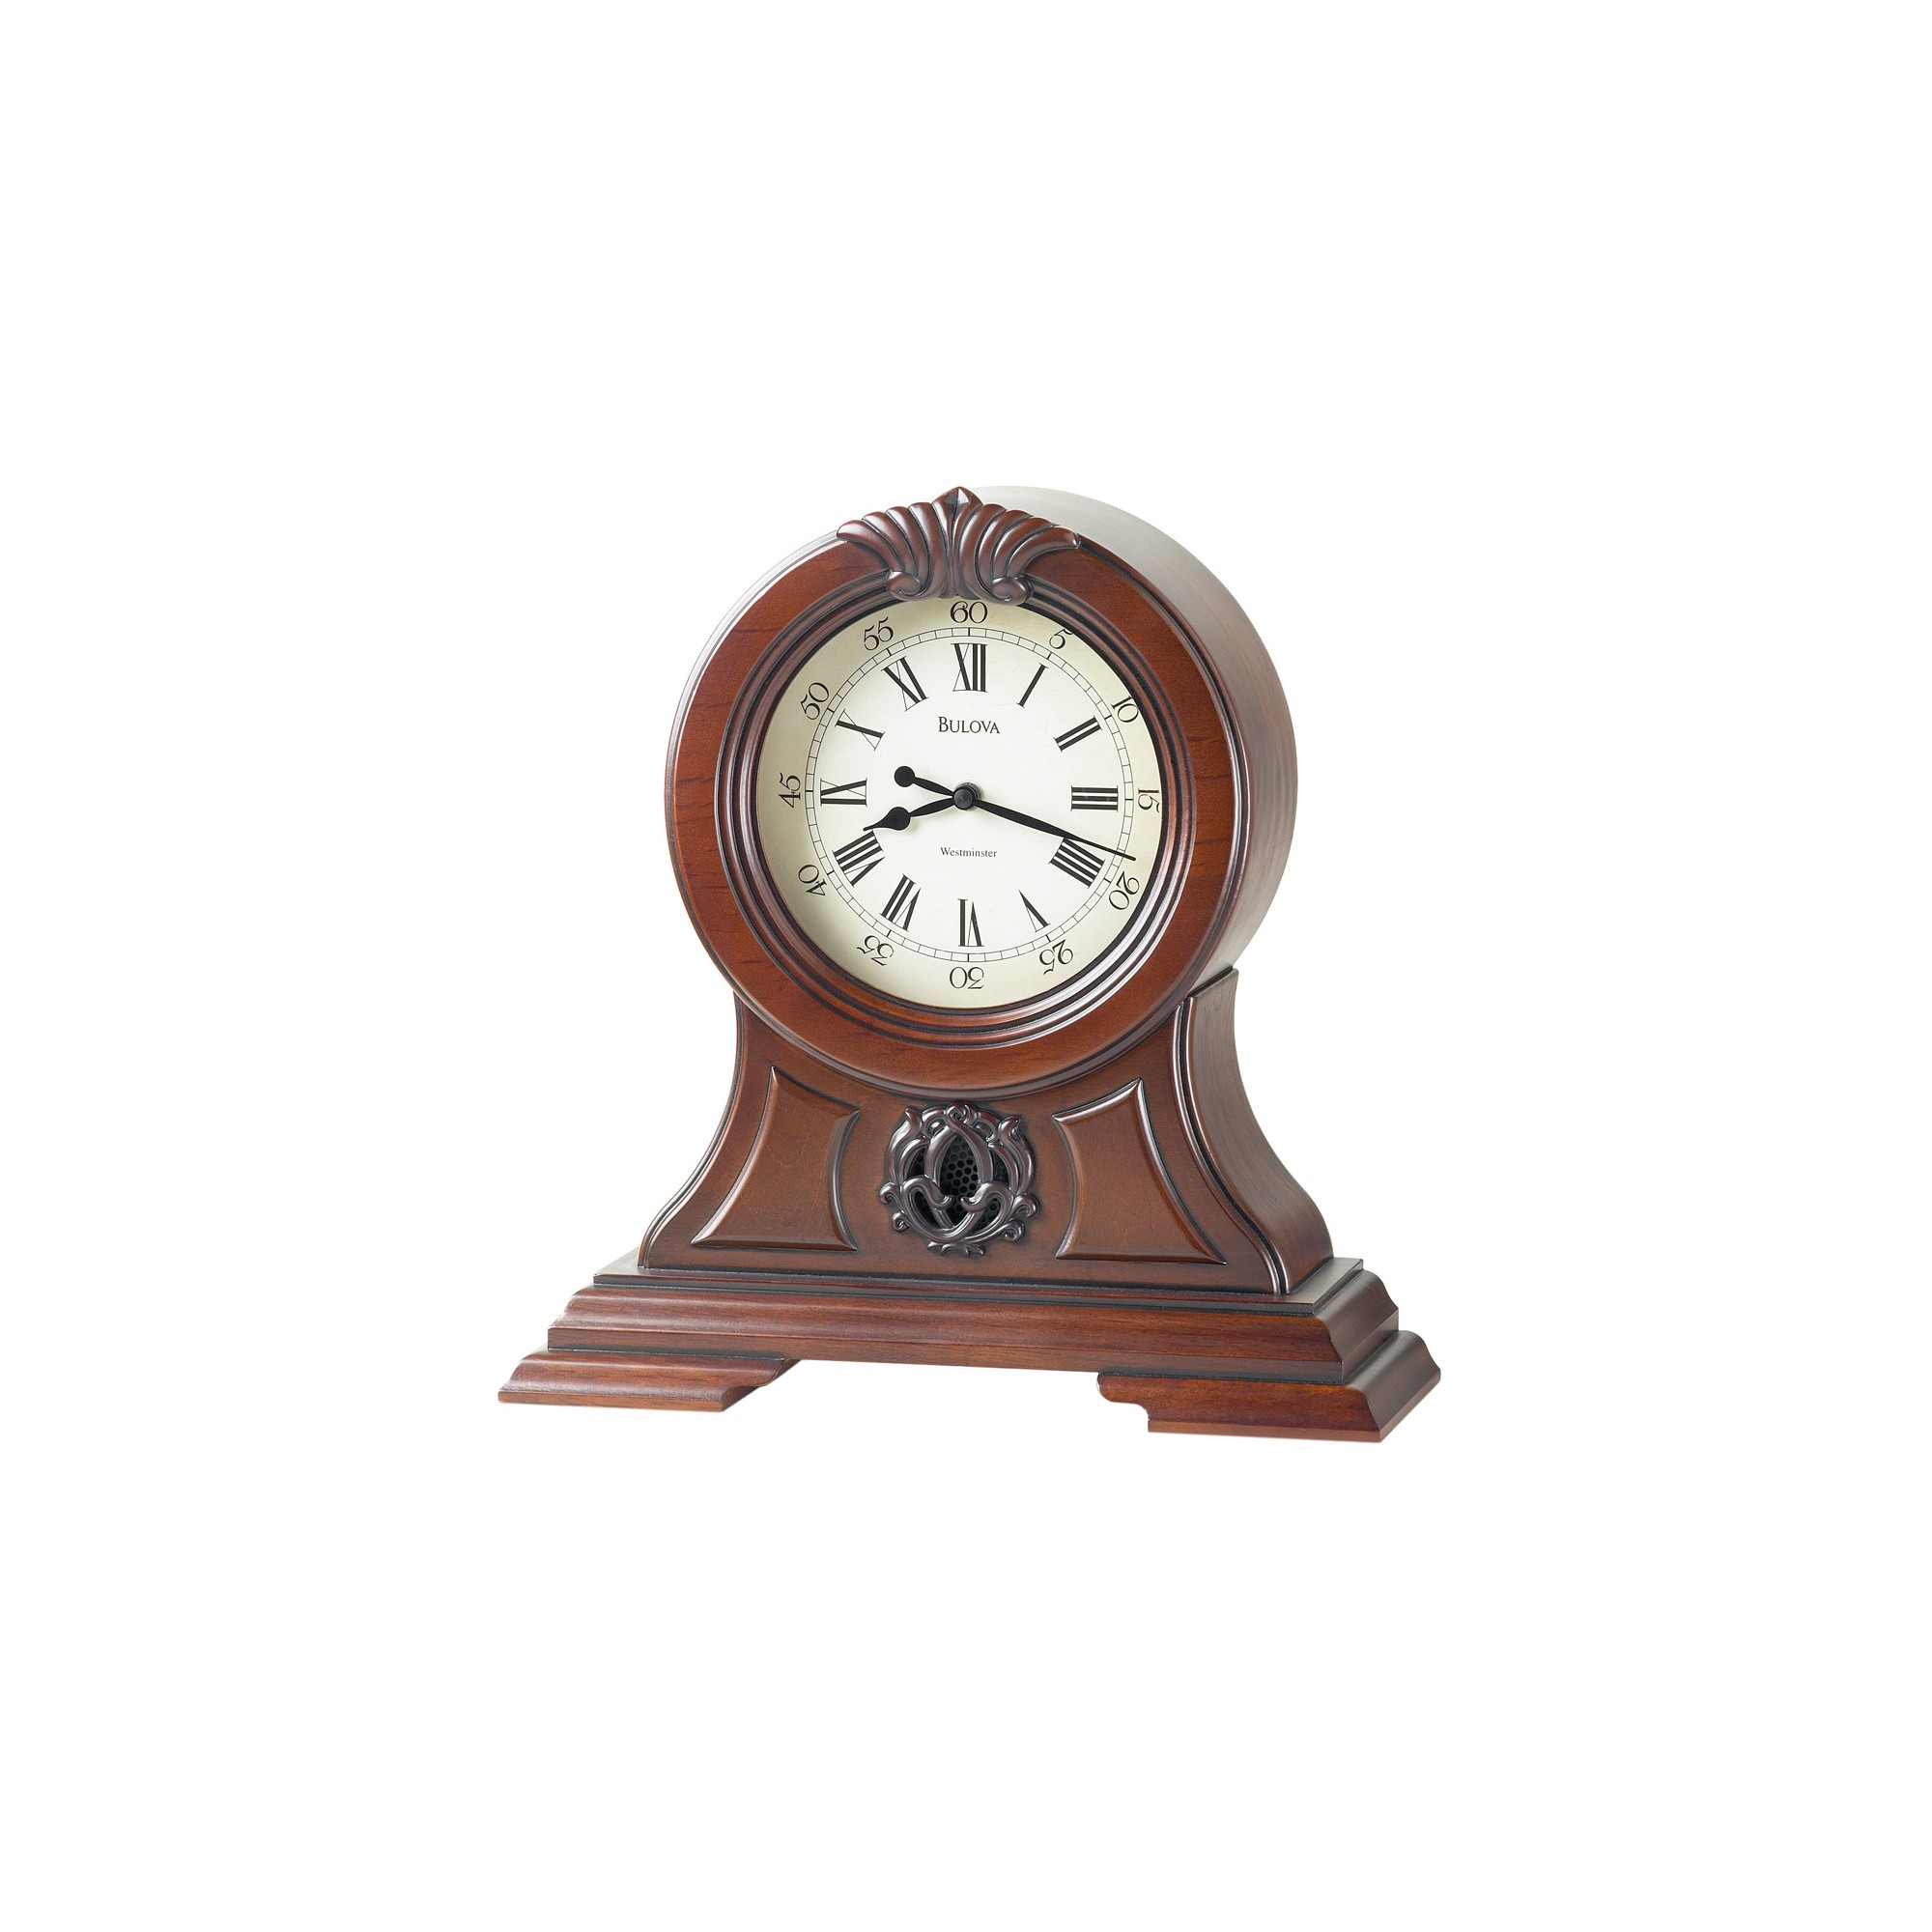 Bulova Mantel Clock | Bulova Wall Clocks | Mantel Clock